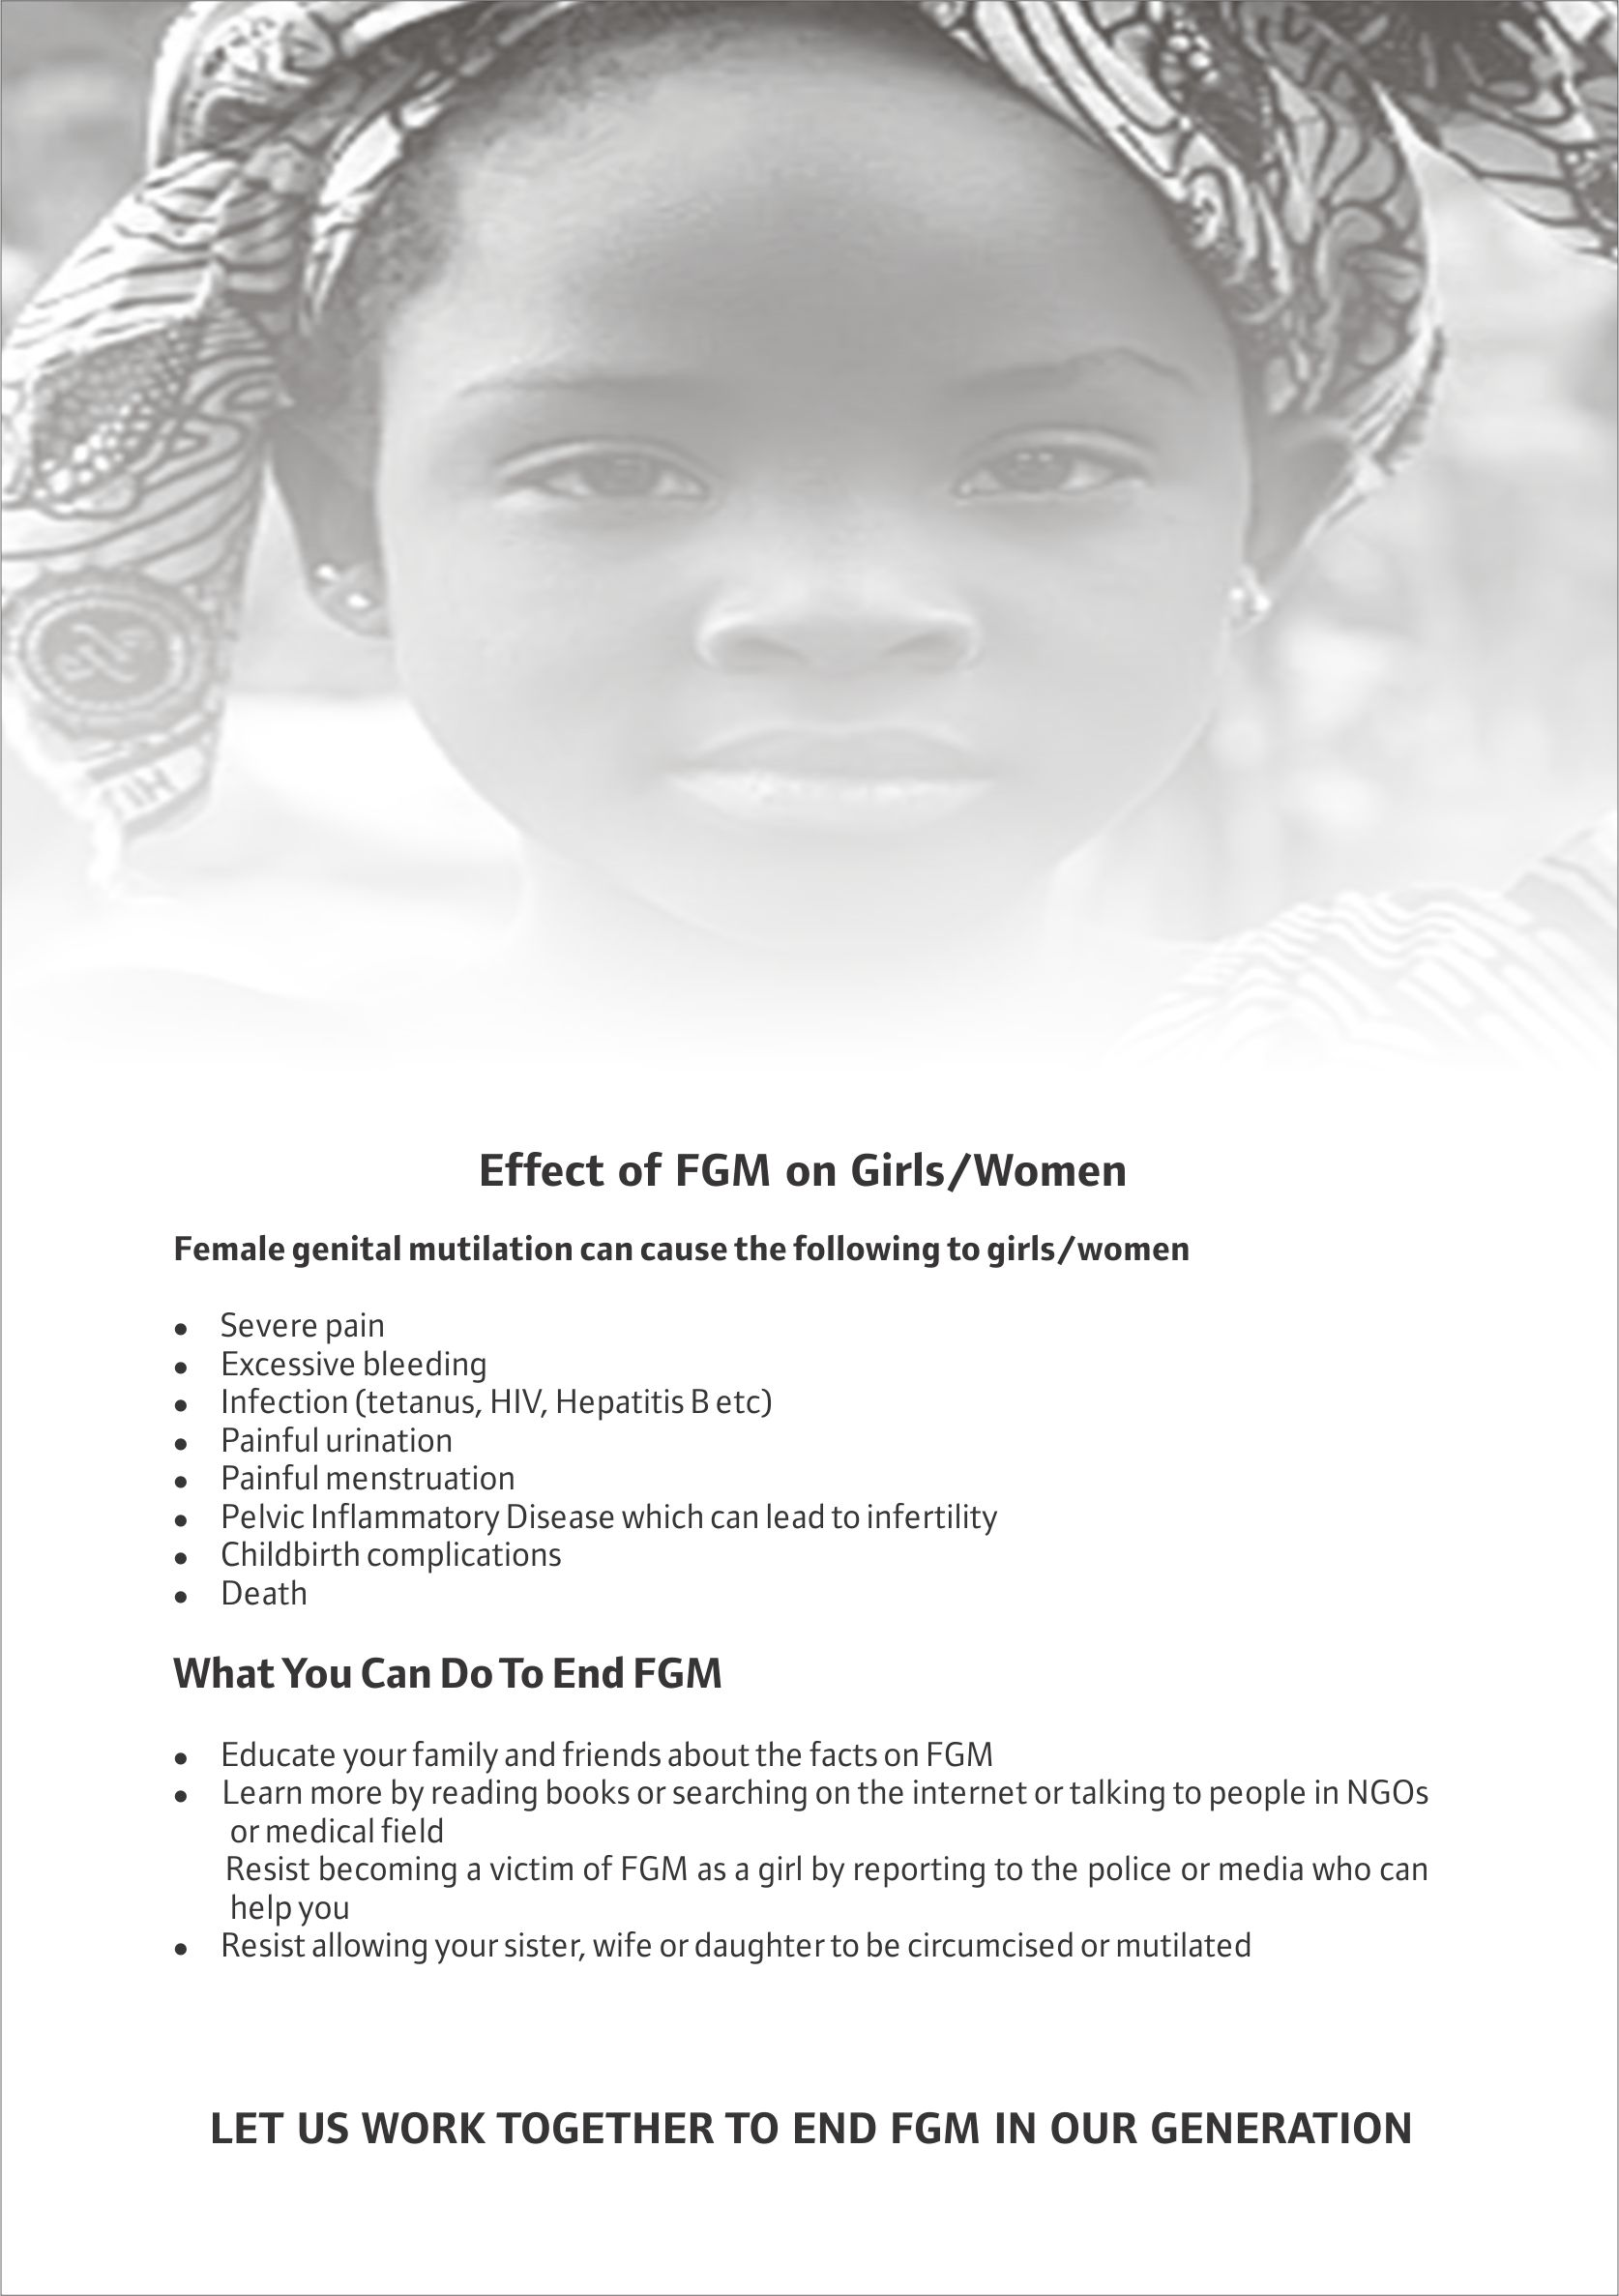 Effect of FGM on Girls/Women